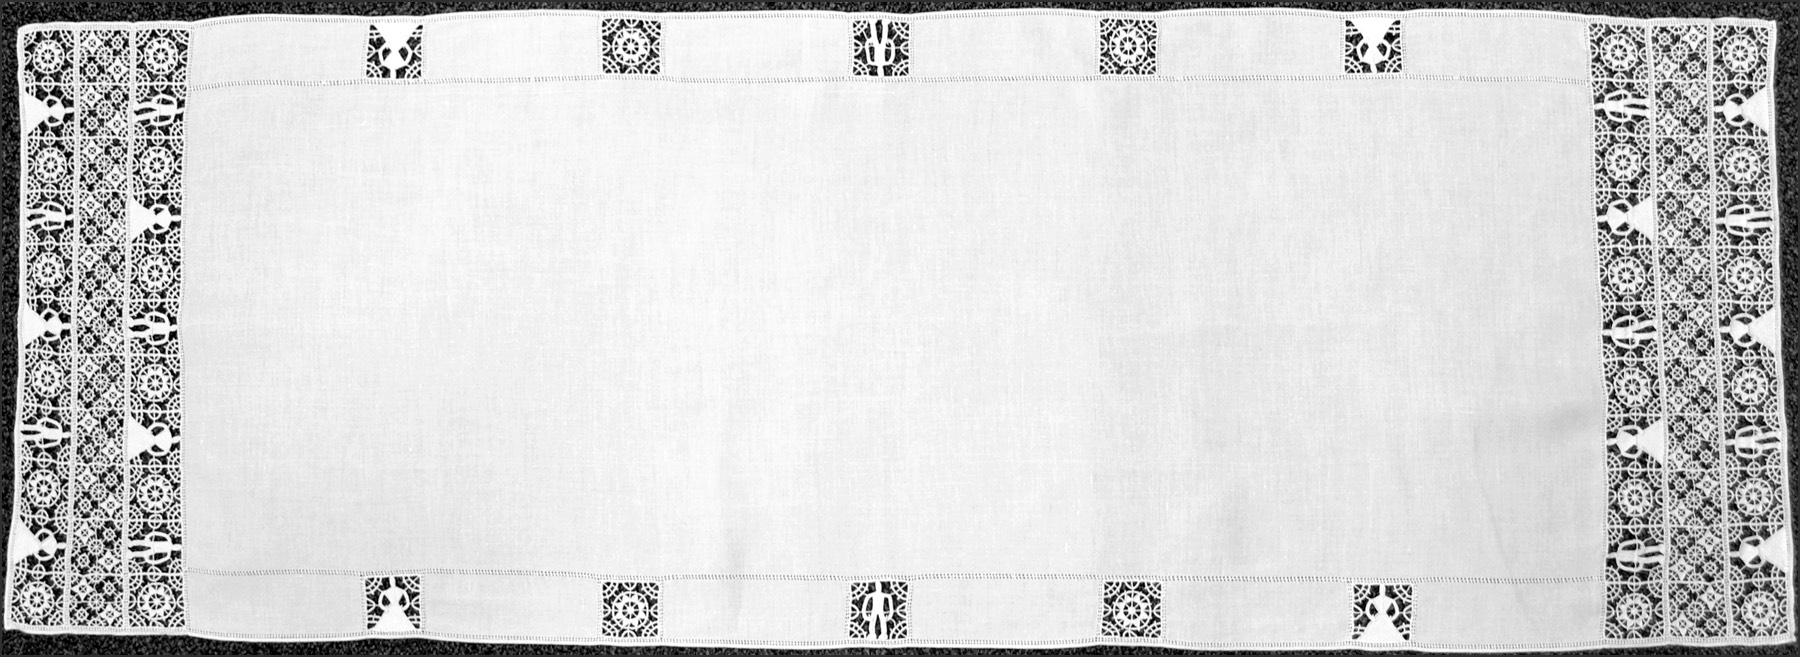 Chemin de table / Table runner